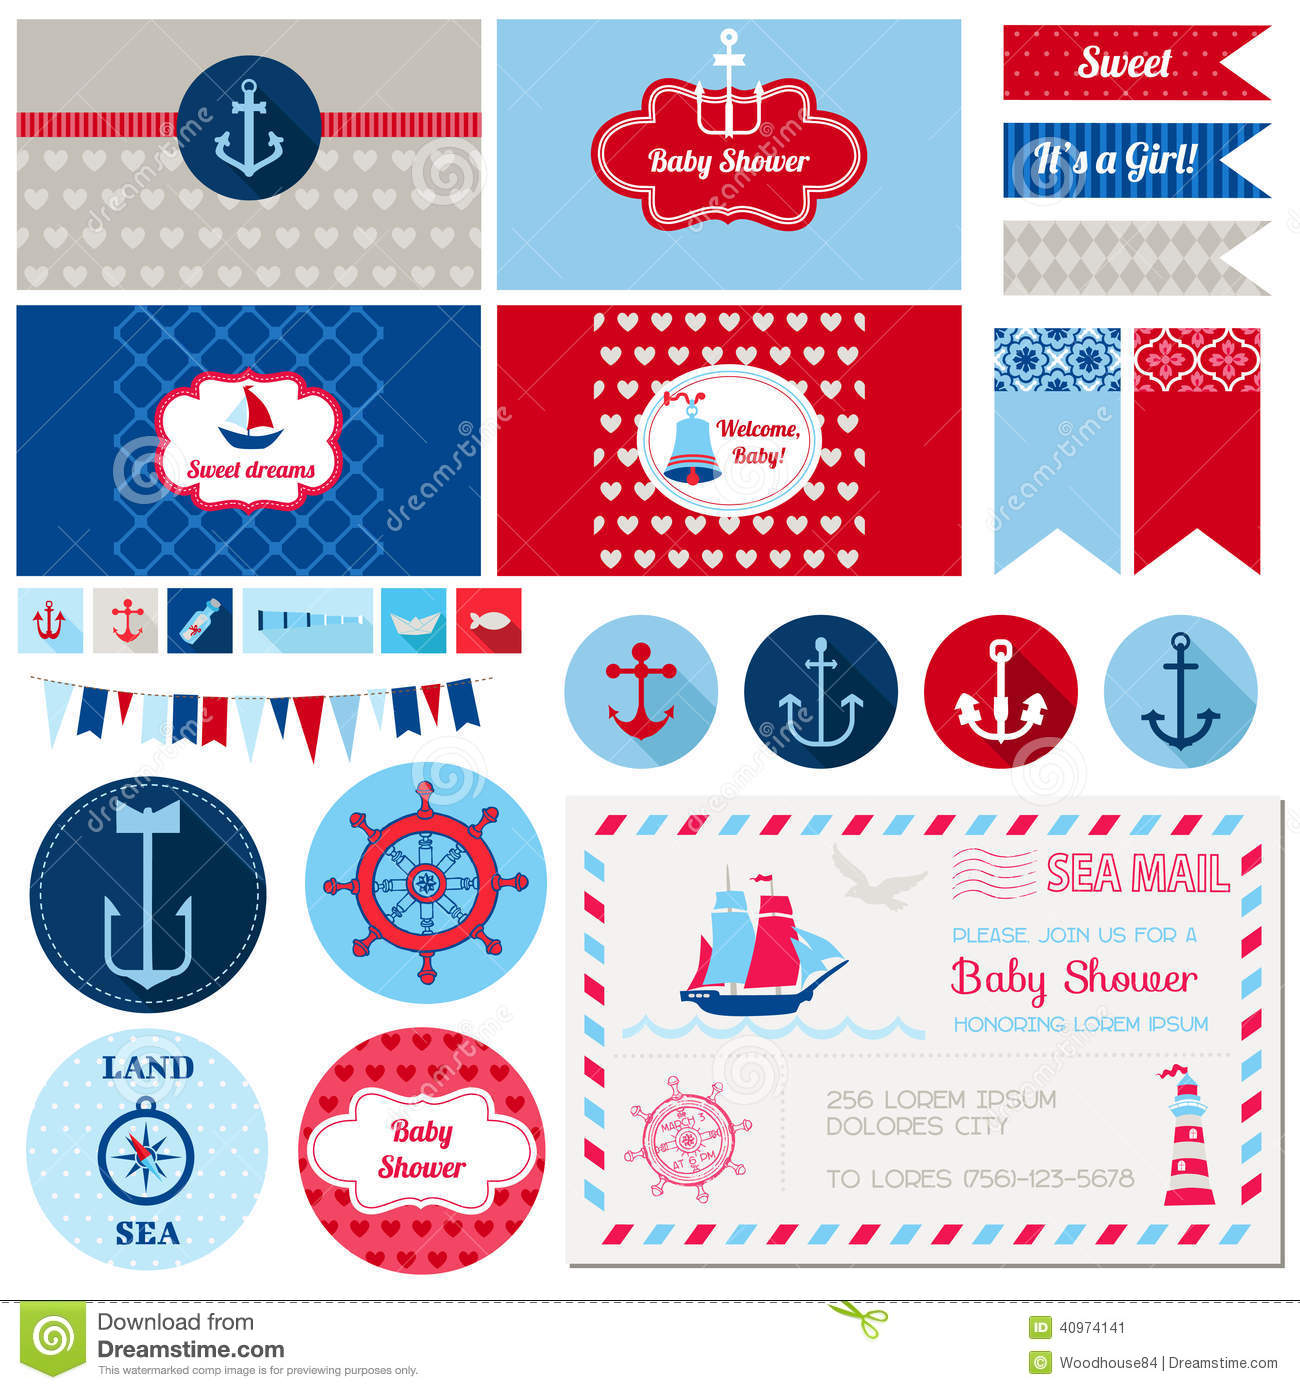 Baby Shower Nautical Theme Invitations for great invitations layout